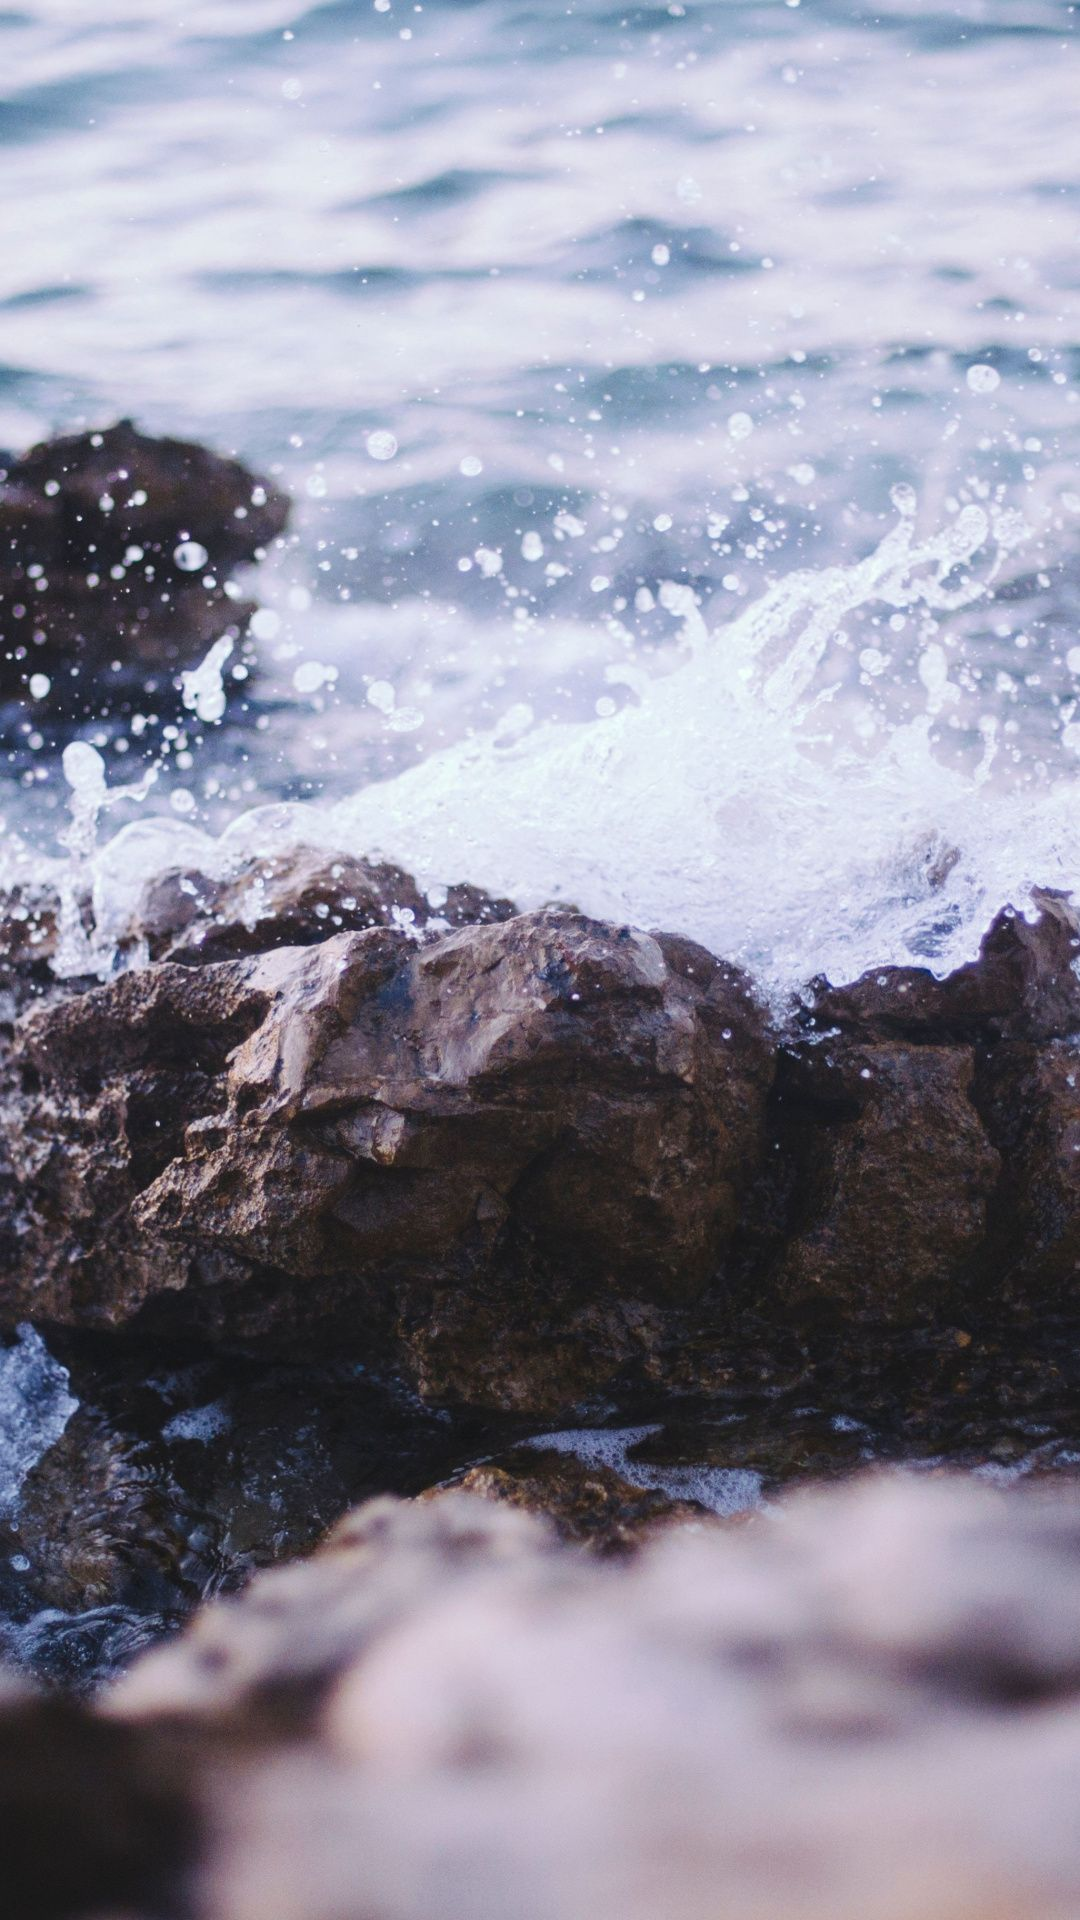 Close Up Collide Sea Waves And Rocks 1080x1920 Wallpaper Natural Wallpaper Wallpaper Nature Wallpaper